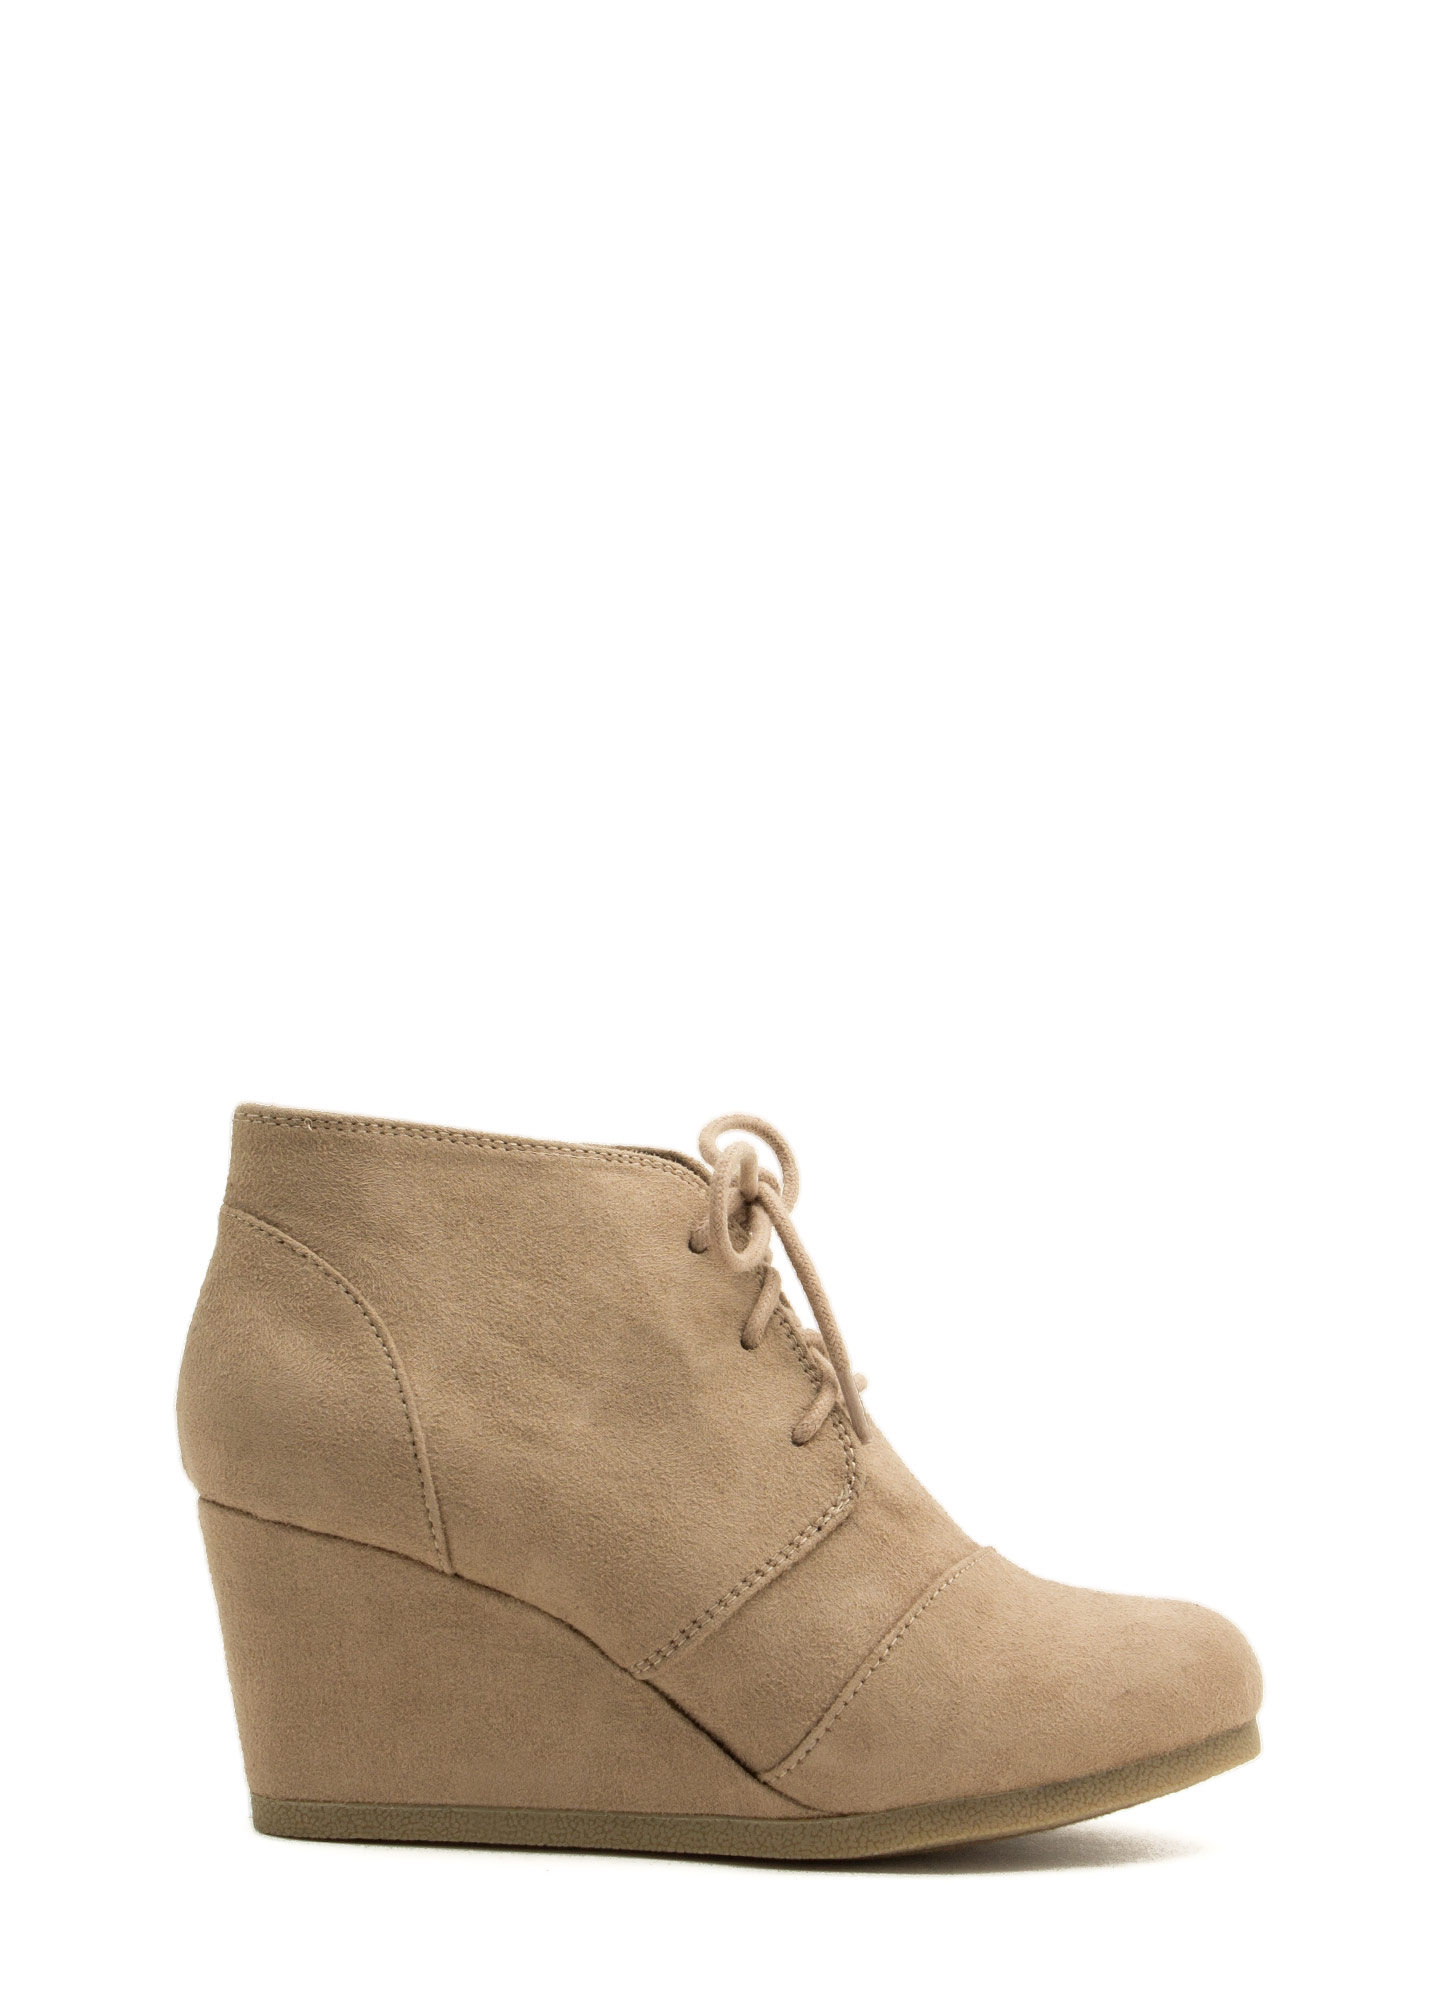 Panel Accent Wedge Booties LTTAUPE